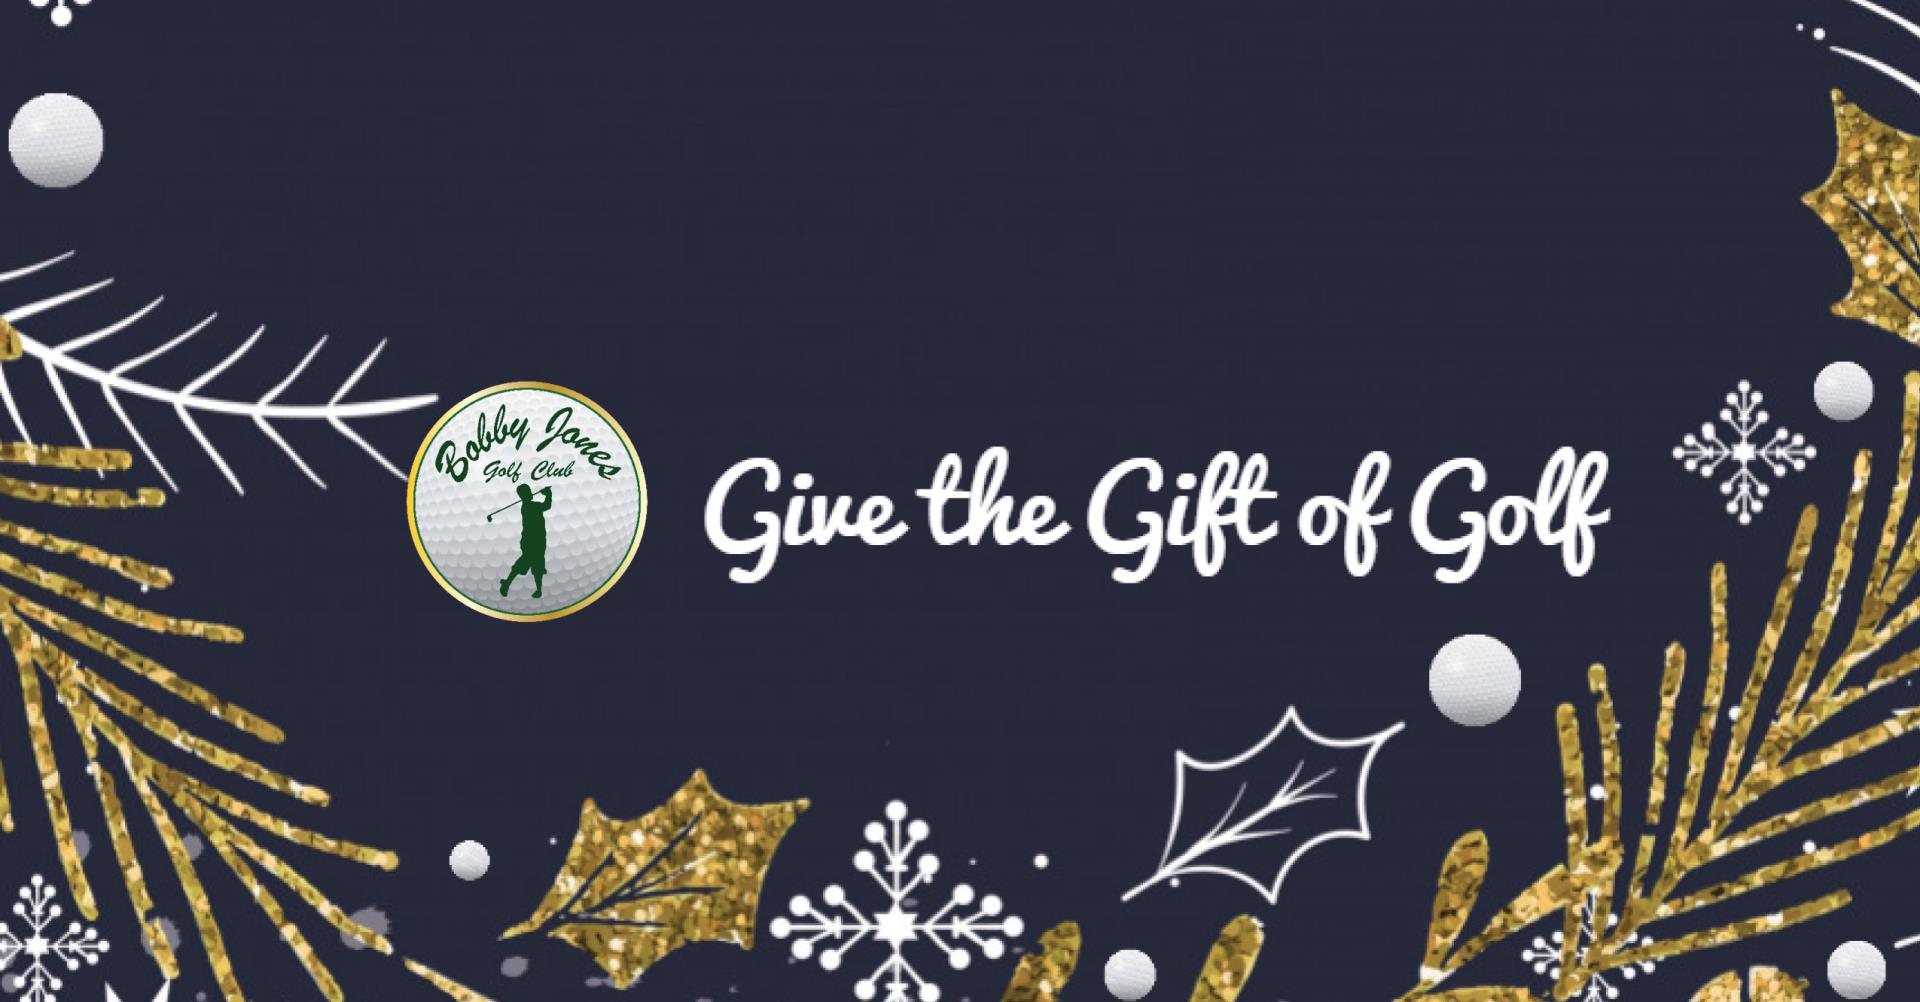 Give the gift of golf this holiday season with bobby jones gift cards. Logo with bobby jones in green. Dark blue backgroud with a wreath of gofl balls, holy and snowflakes in roatating gold and white.